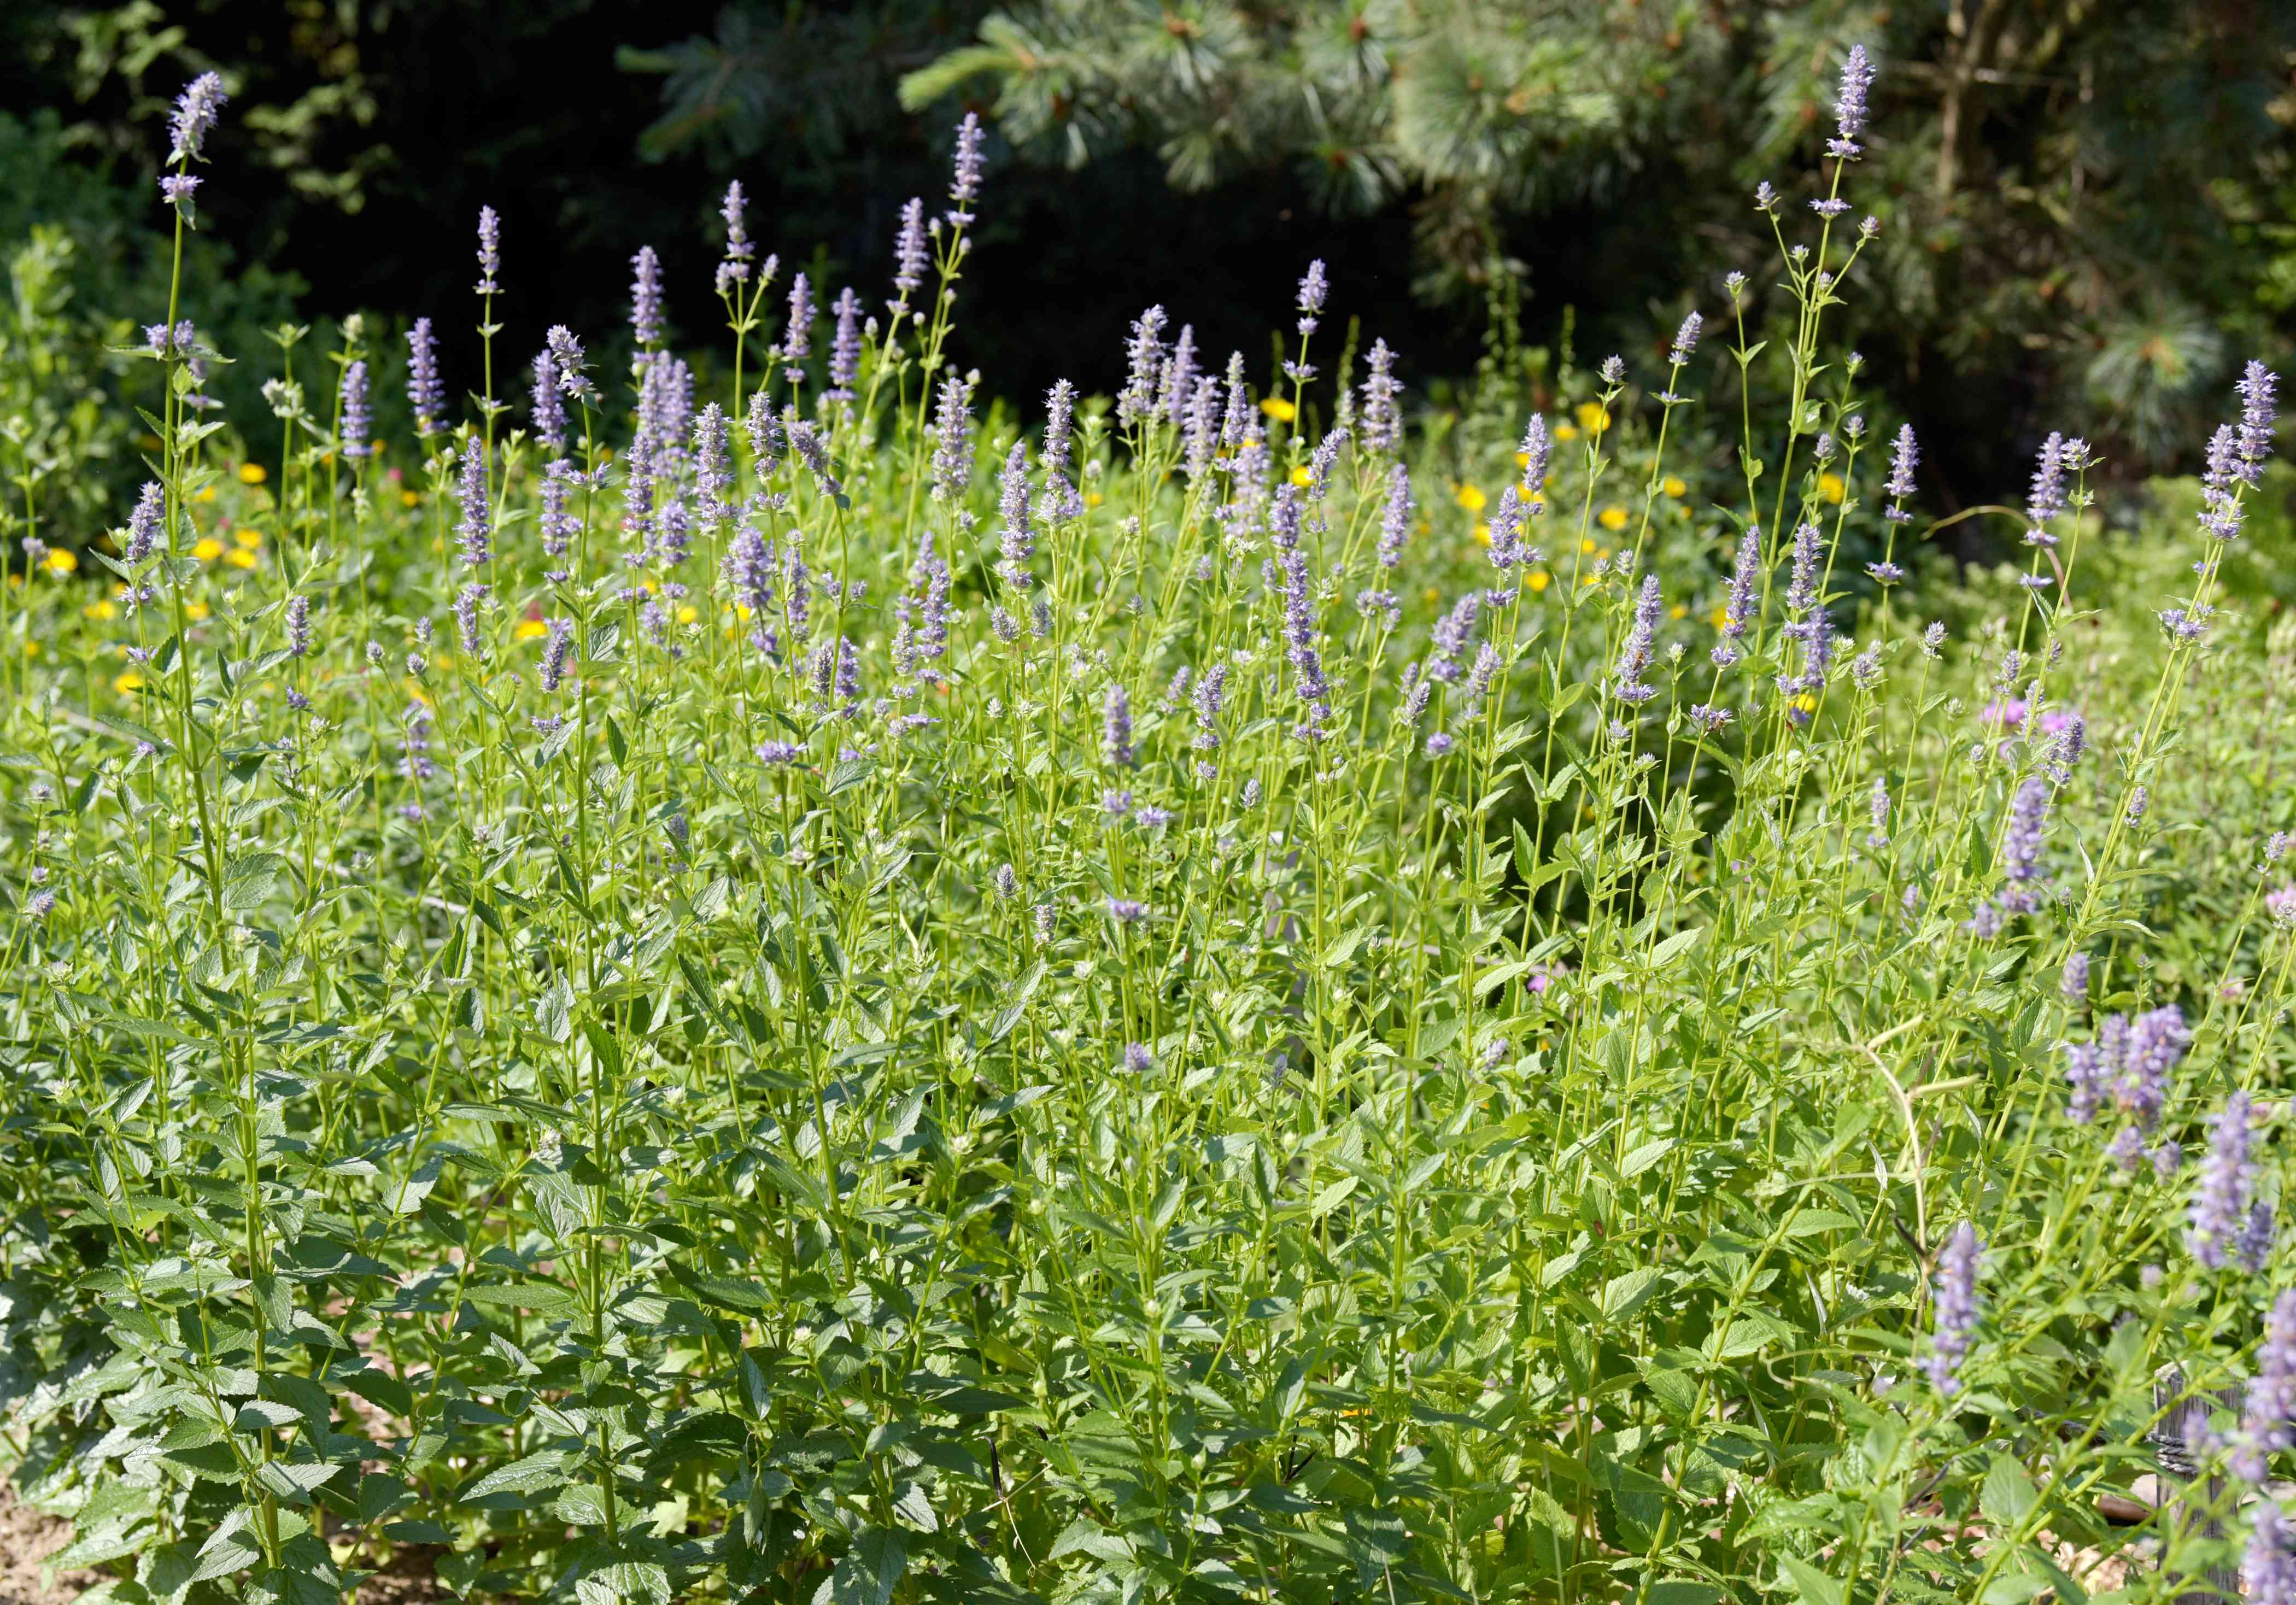 Purple giant hyssop plants with purple flowers on tall spikes and foliage